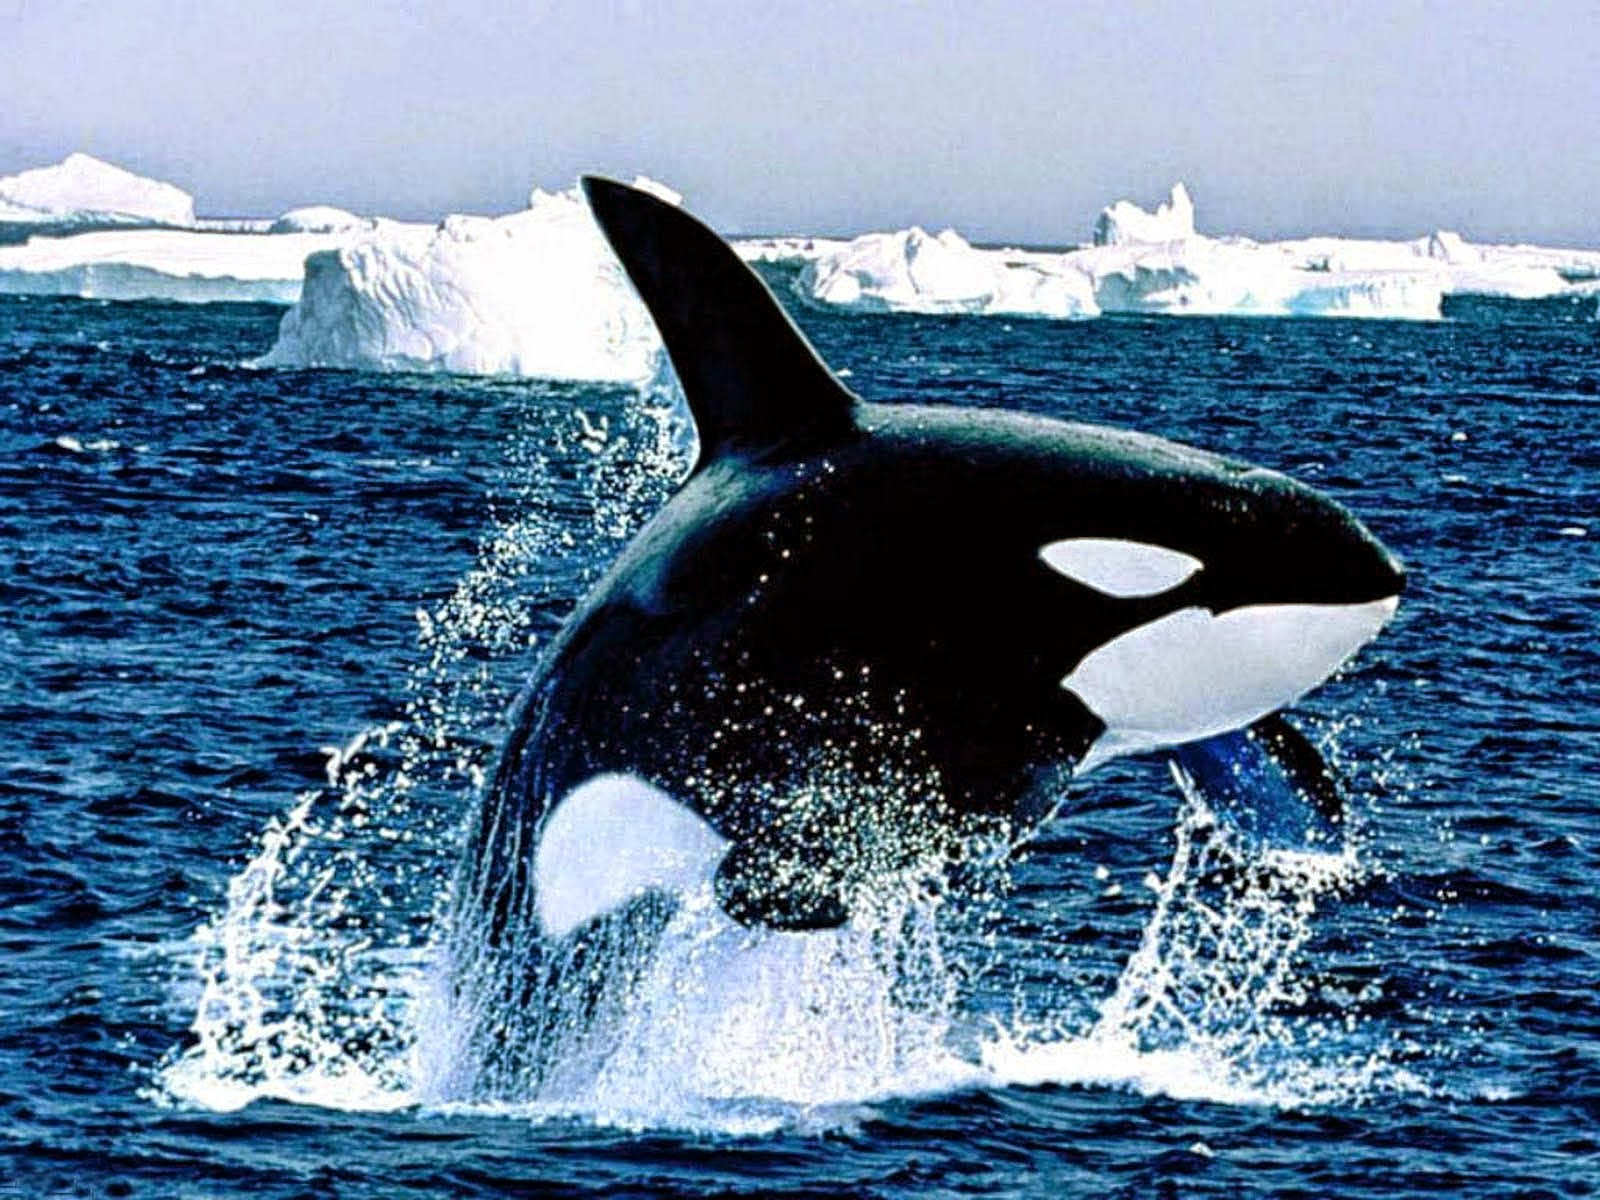 Orca hd wallpapers earth blog orca hd wallpapers altavistaventures Images